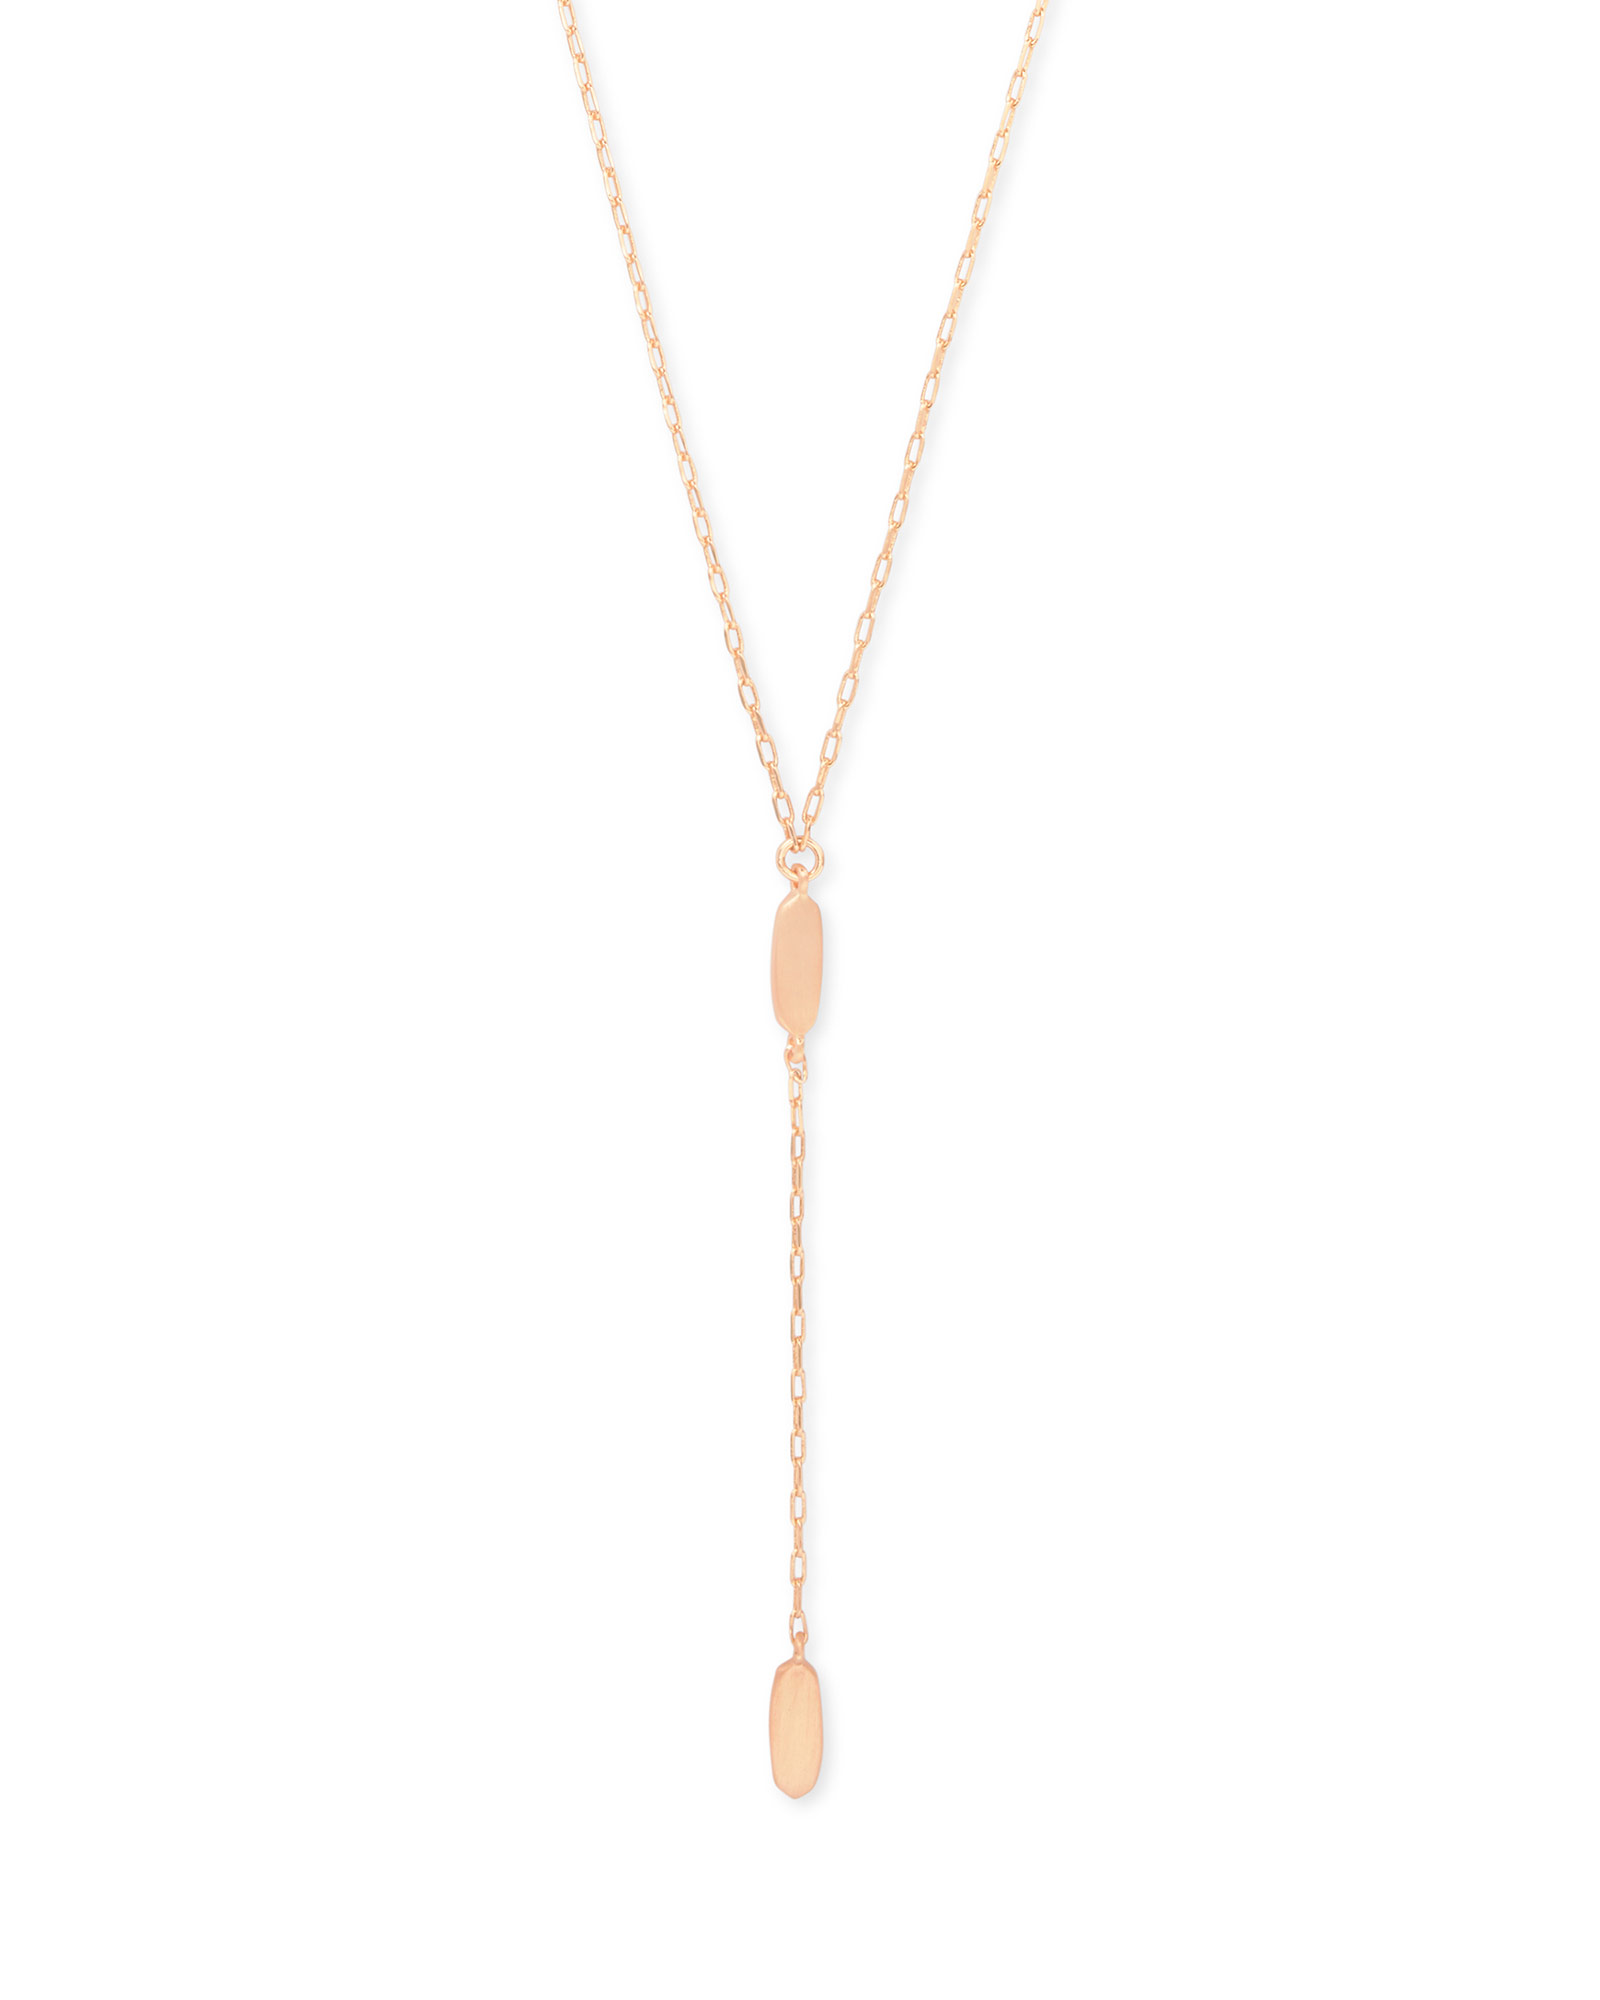 Fern Y Necklace in Rose Gold